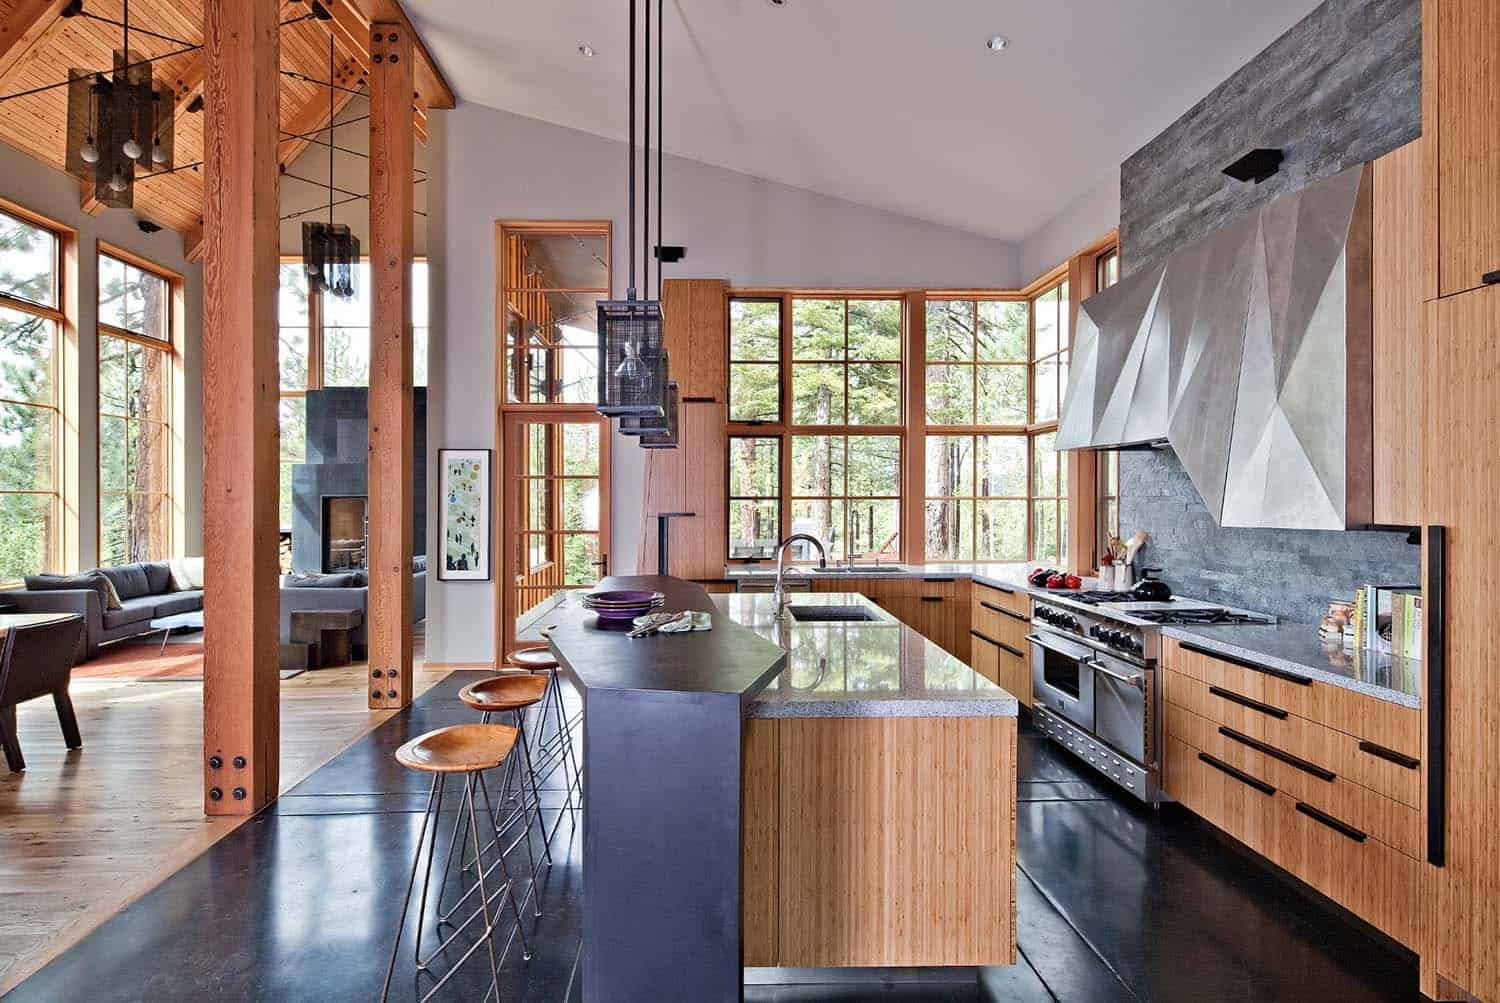 Rustic-Modern-Home-WA Design-02-1 Kindesign